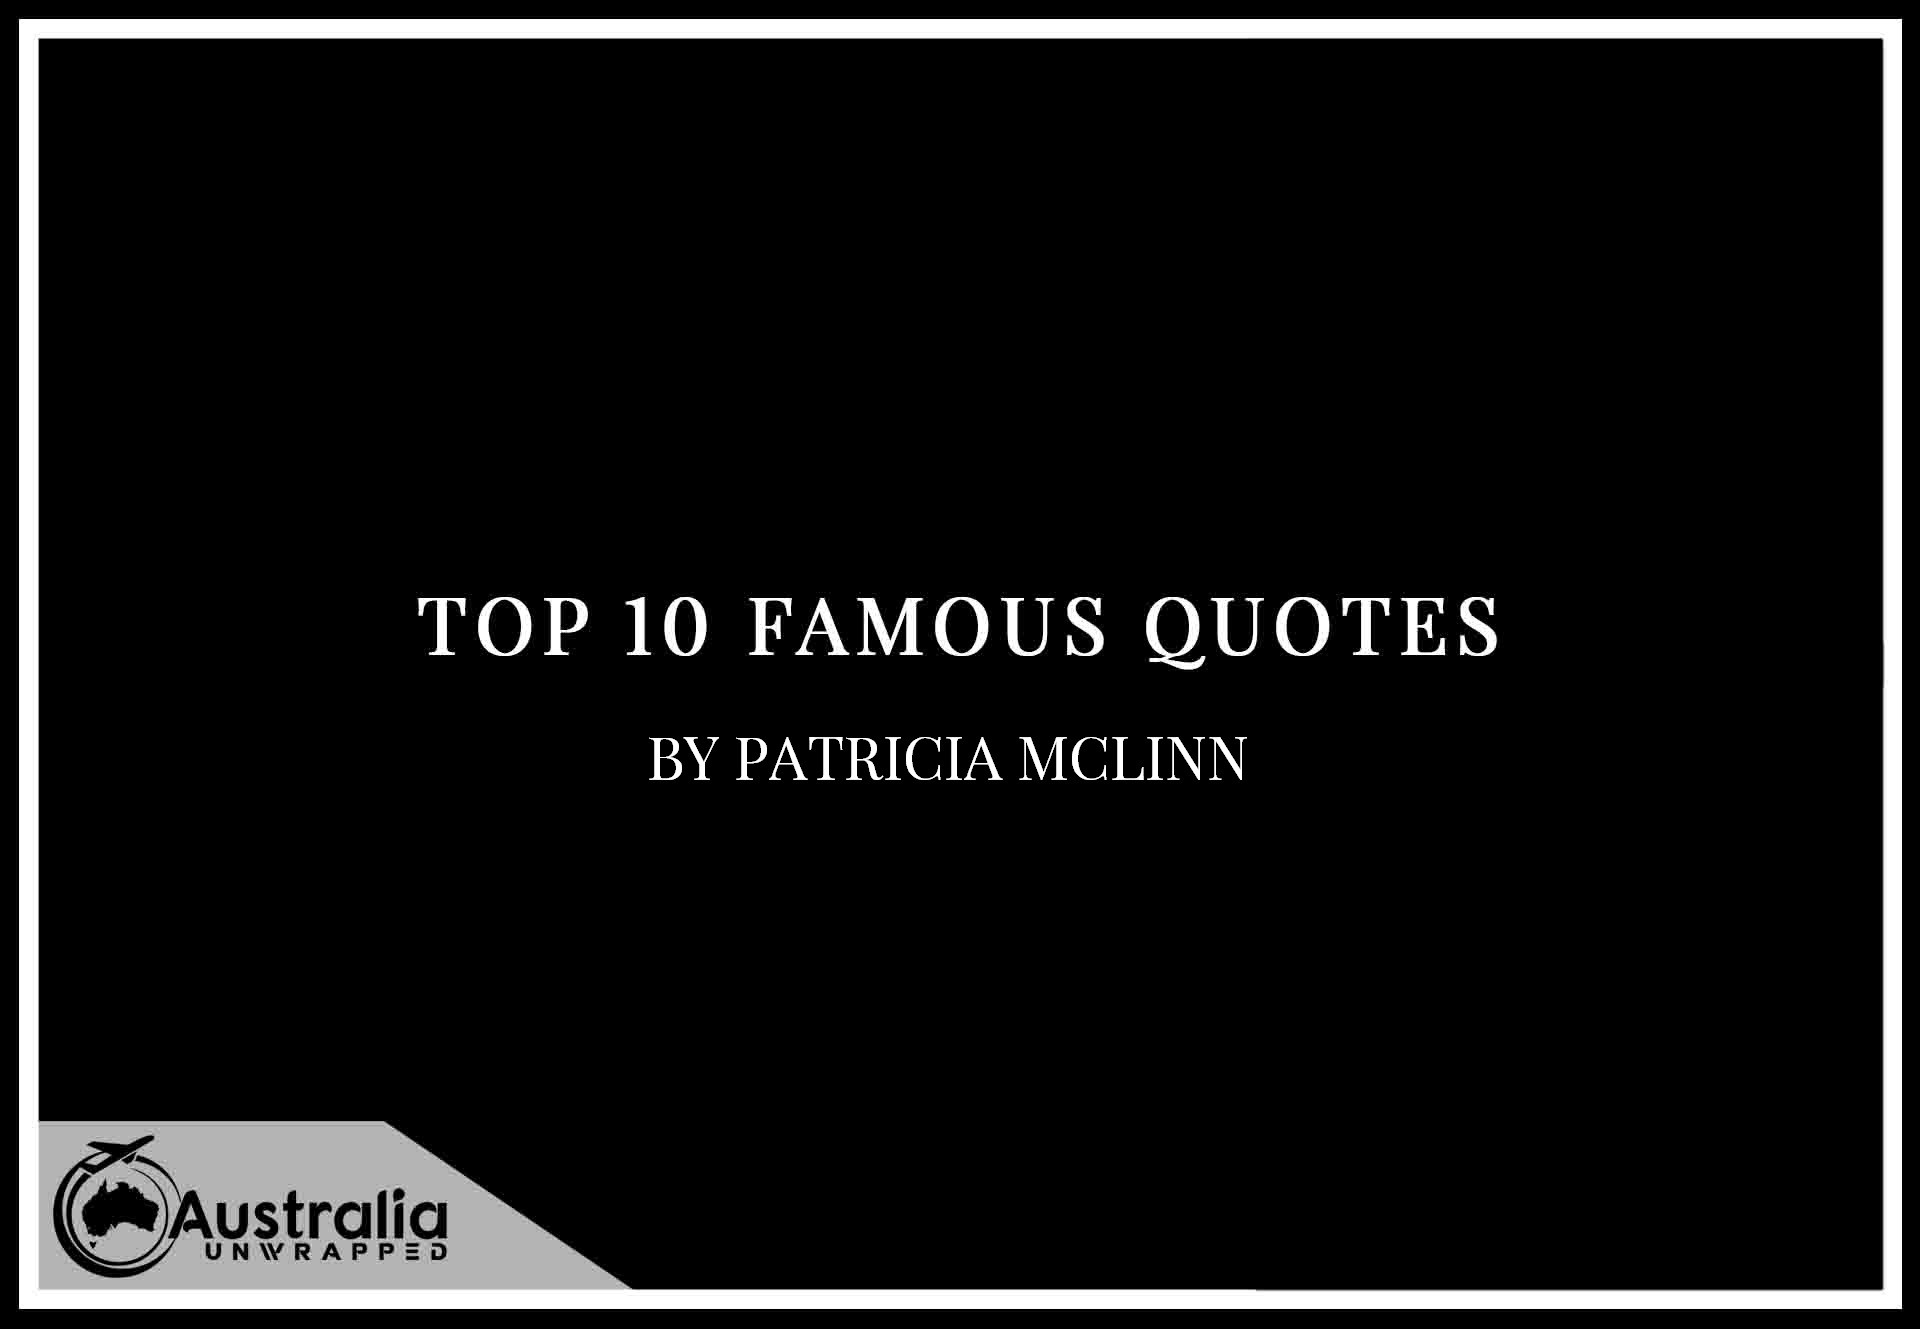 Top 10 Famous Quotes by Author Patricia McLinn